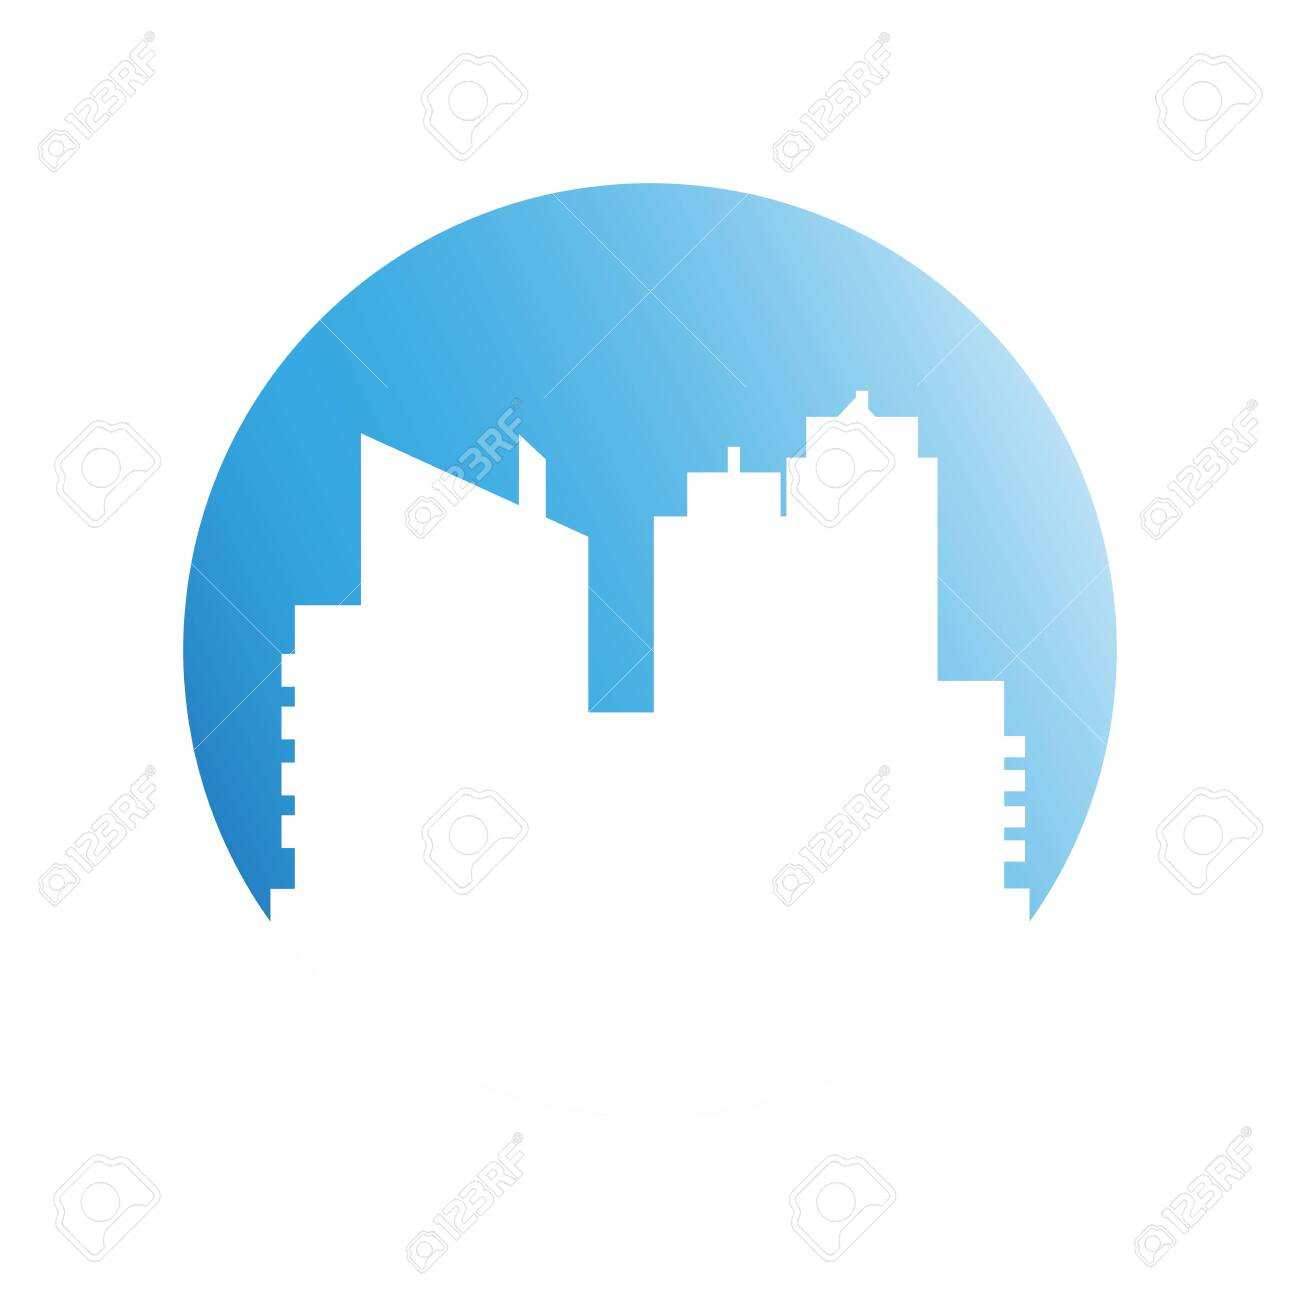 building, city skyline in blue circle - 127014246